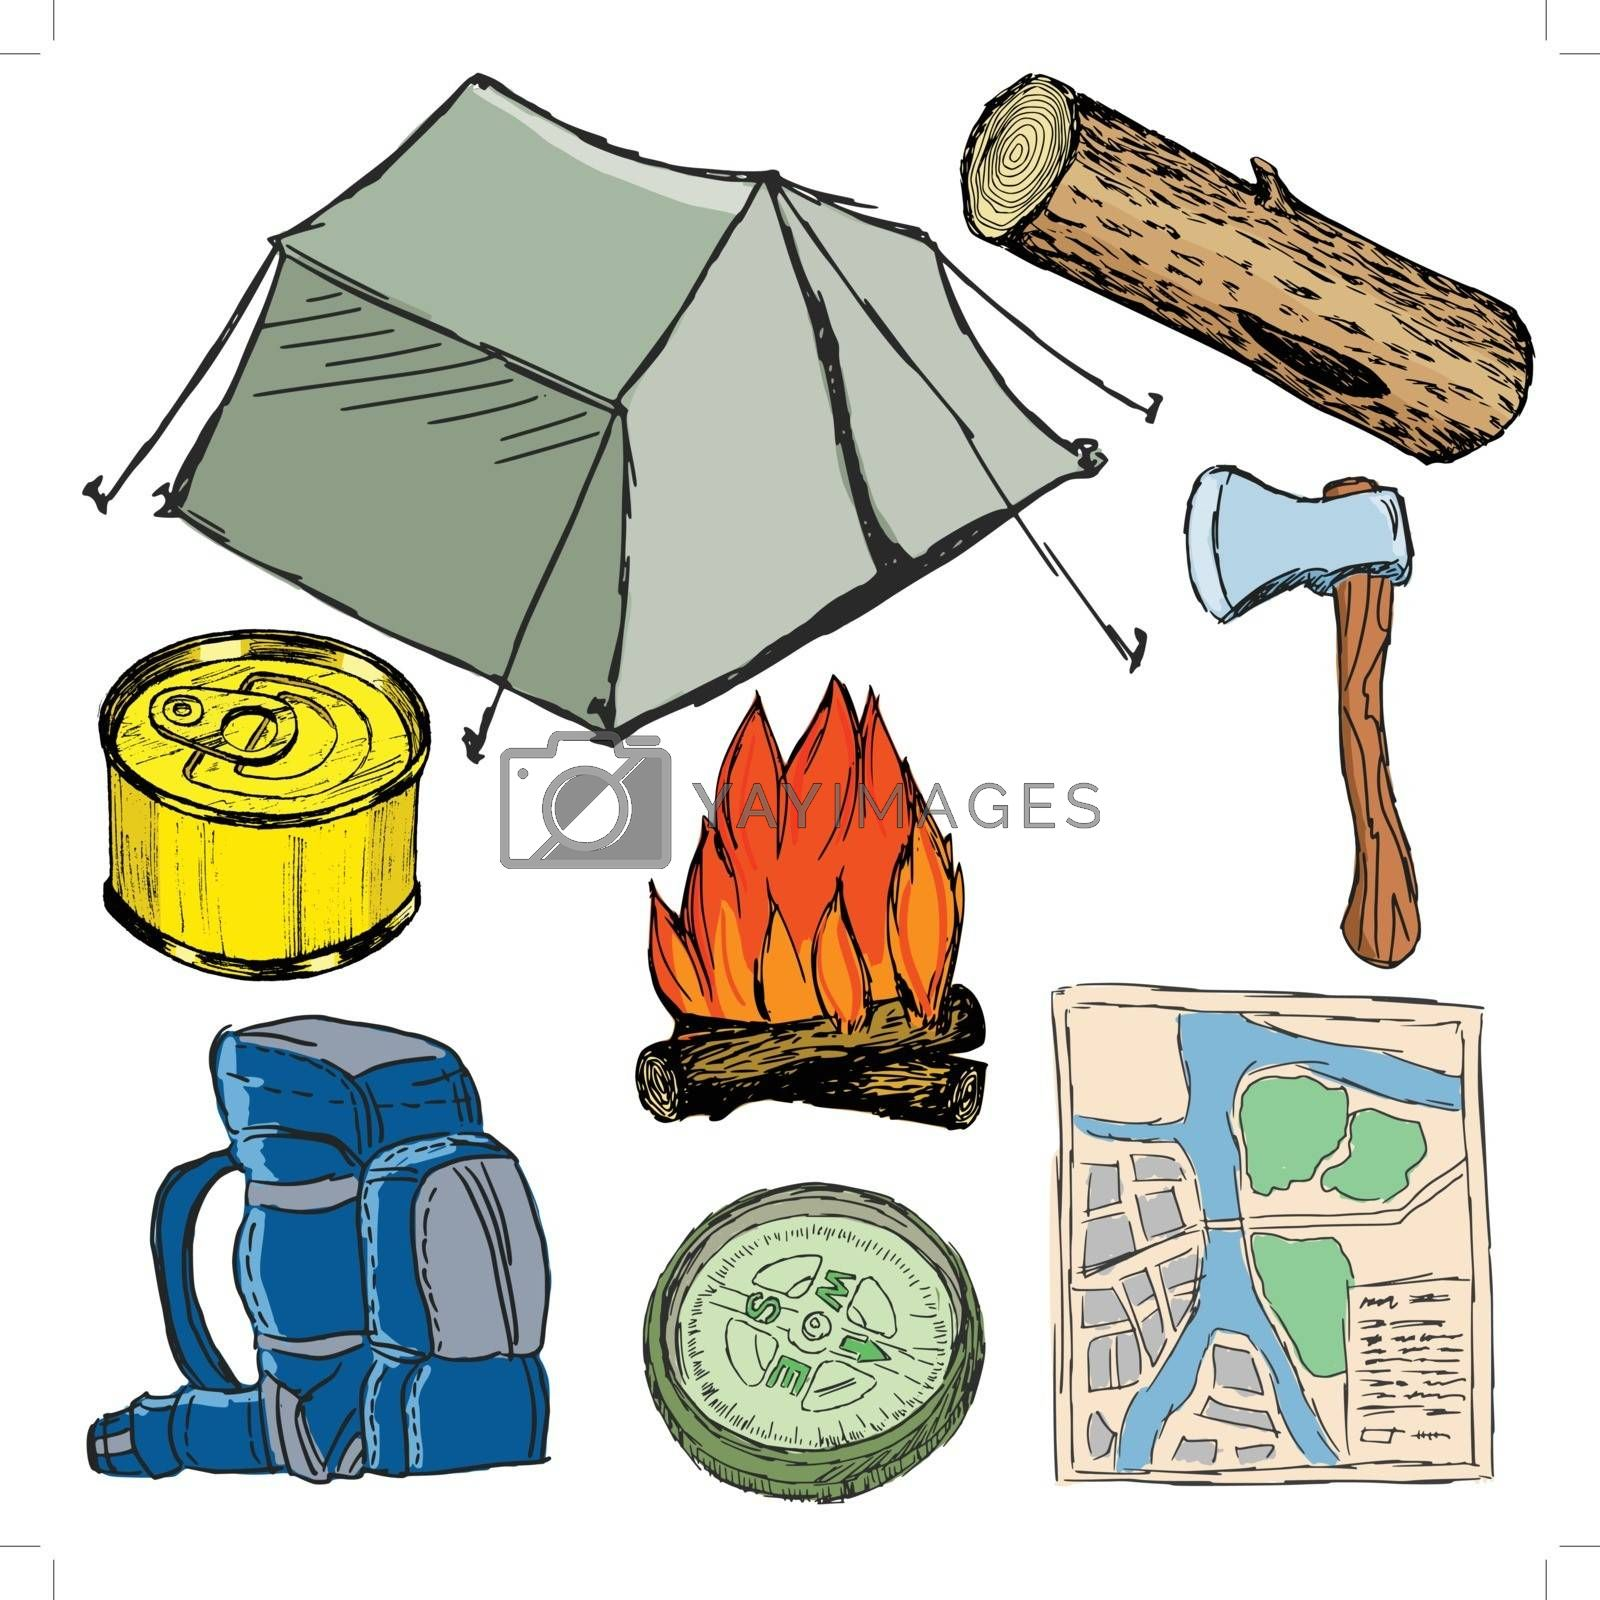 Royalty free image of set of camp objects by Perysty